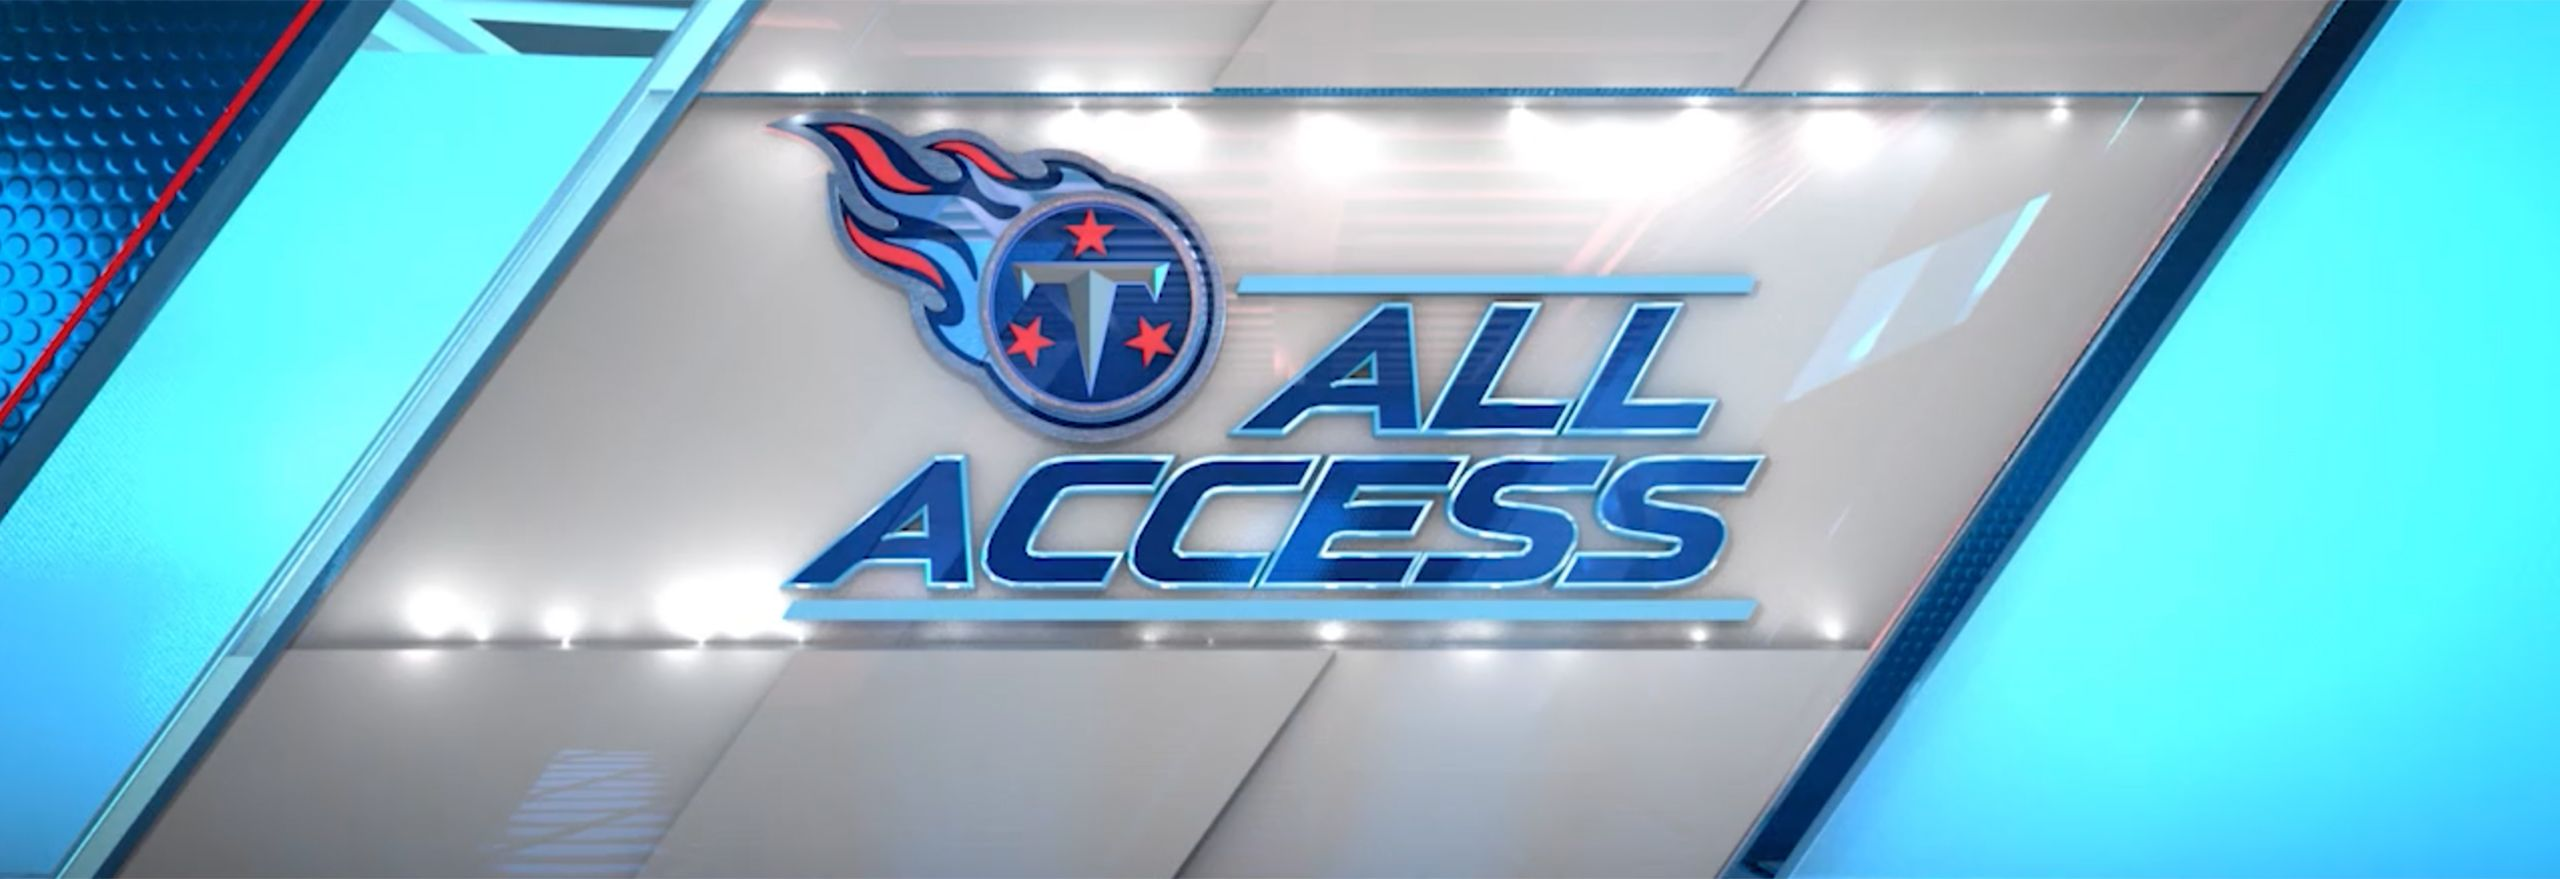 titans-all-access-hdr